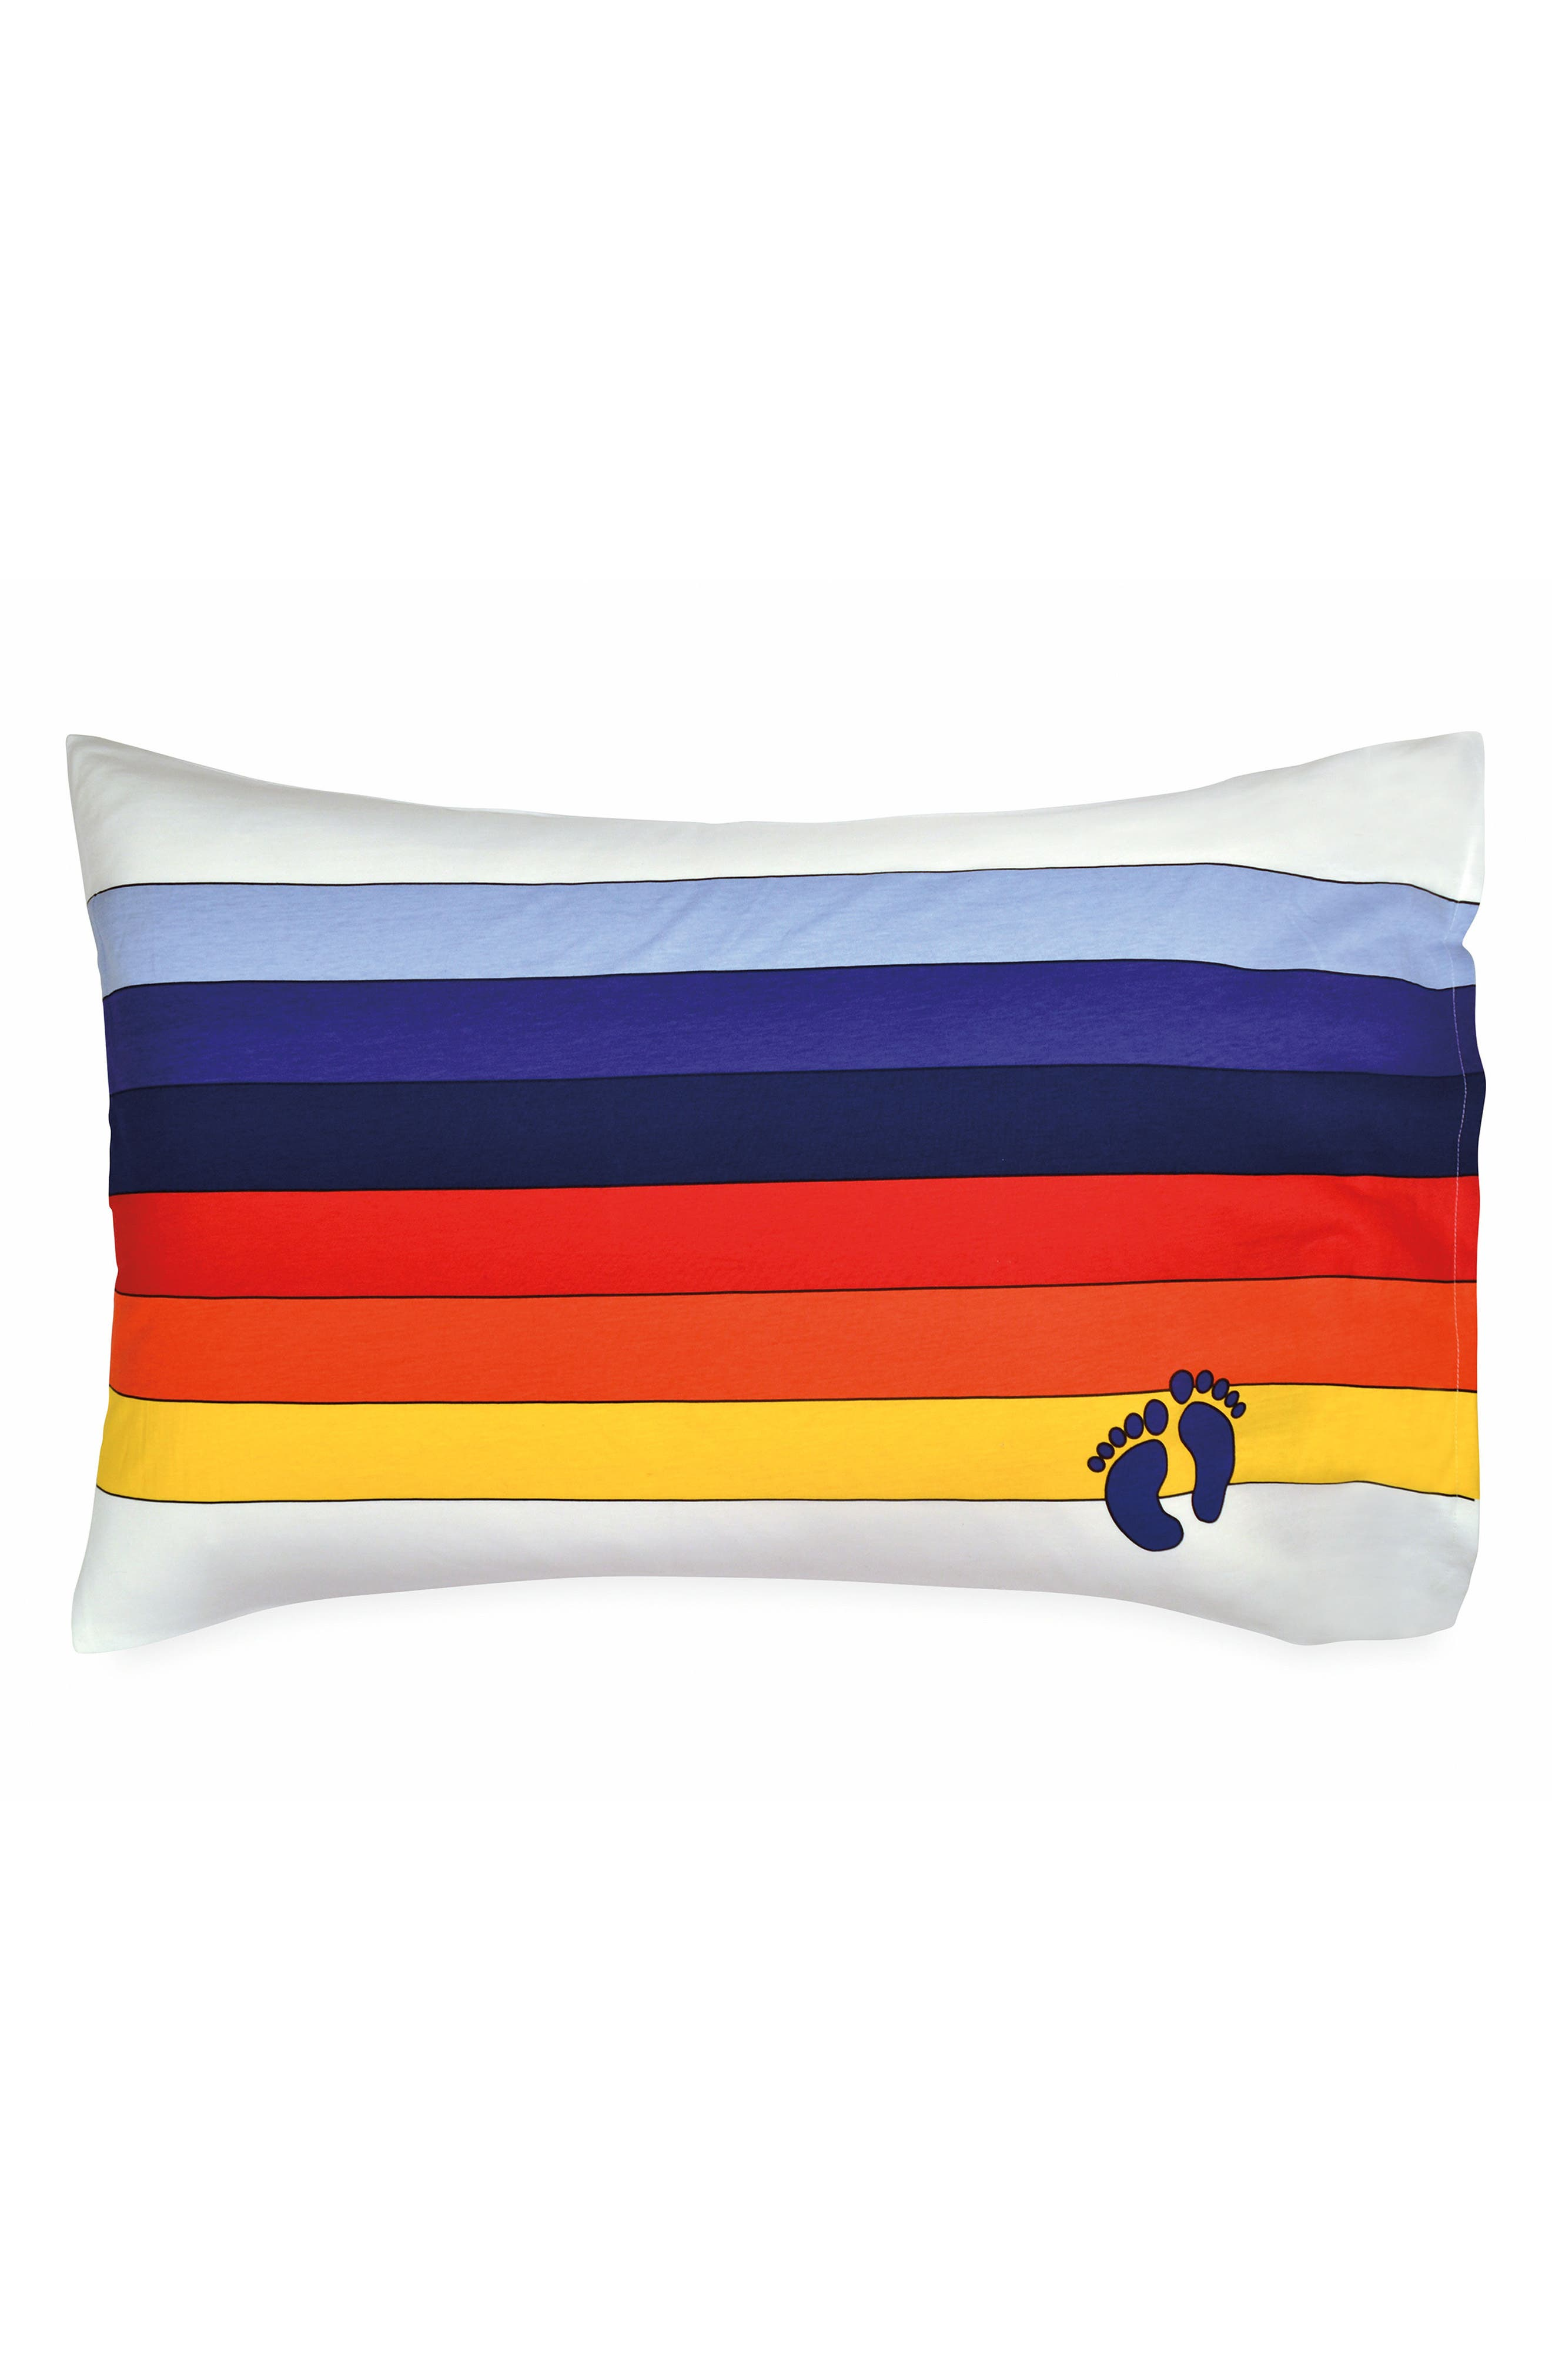 Rainbow Pillowcase,                         Main,                         color, White